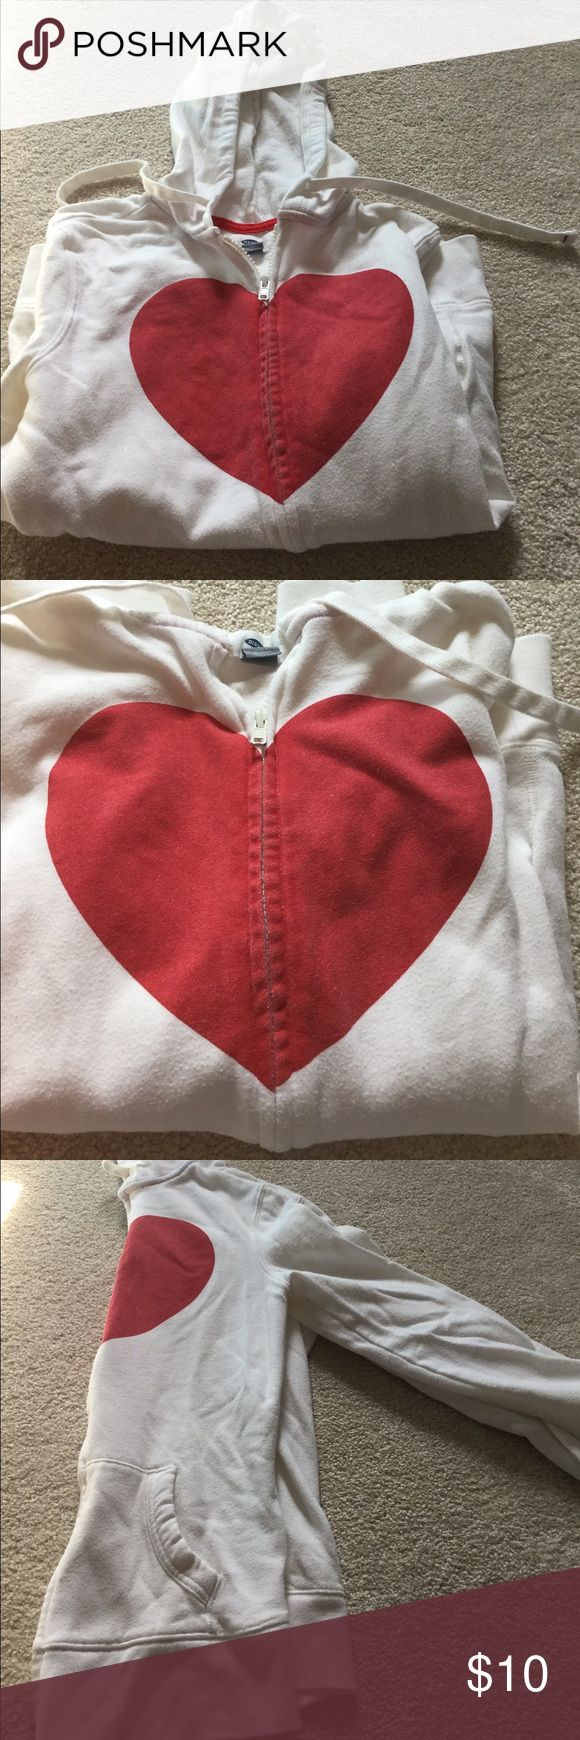 Old Navy Heart print Fleece Hoodie Small Old Navy Fleece Hoodie. Size small. Zip up, drawstring hood. White with red heart graphic on front. Good condition. Old Navy Tops Sweatshirts & Hoodies